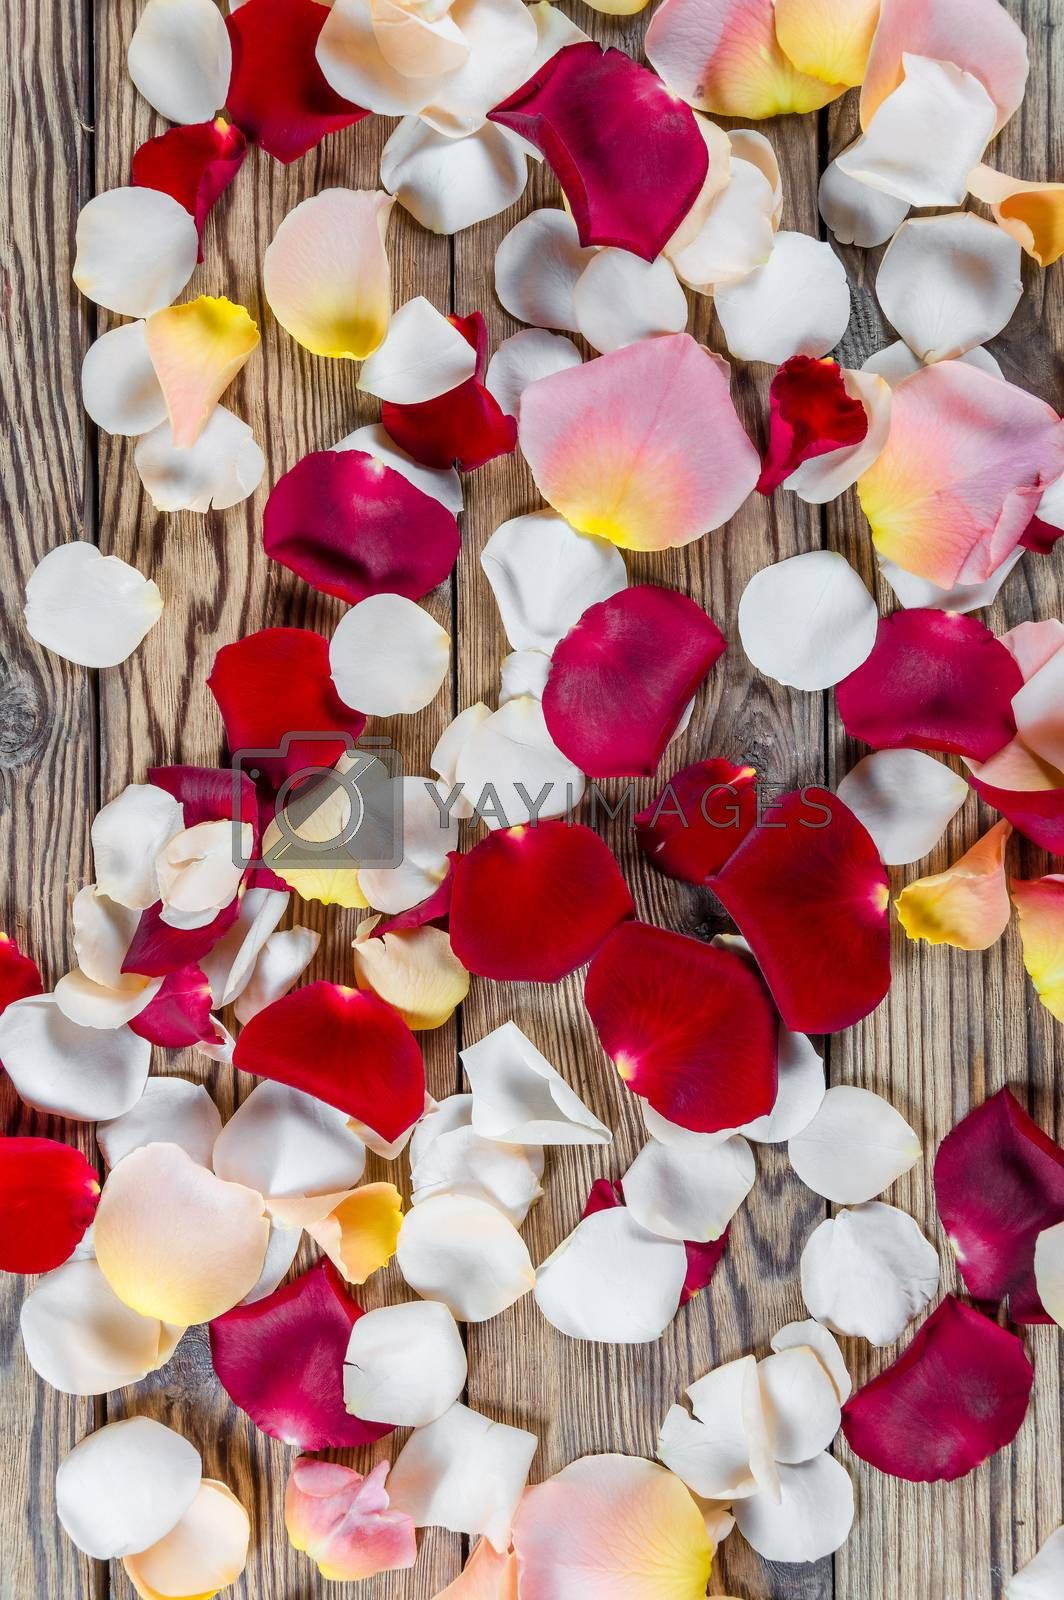 Red, white and pink rose flowers petals on rustic table